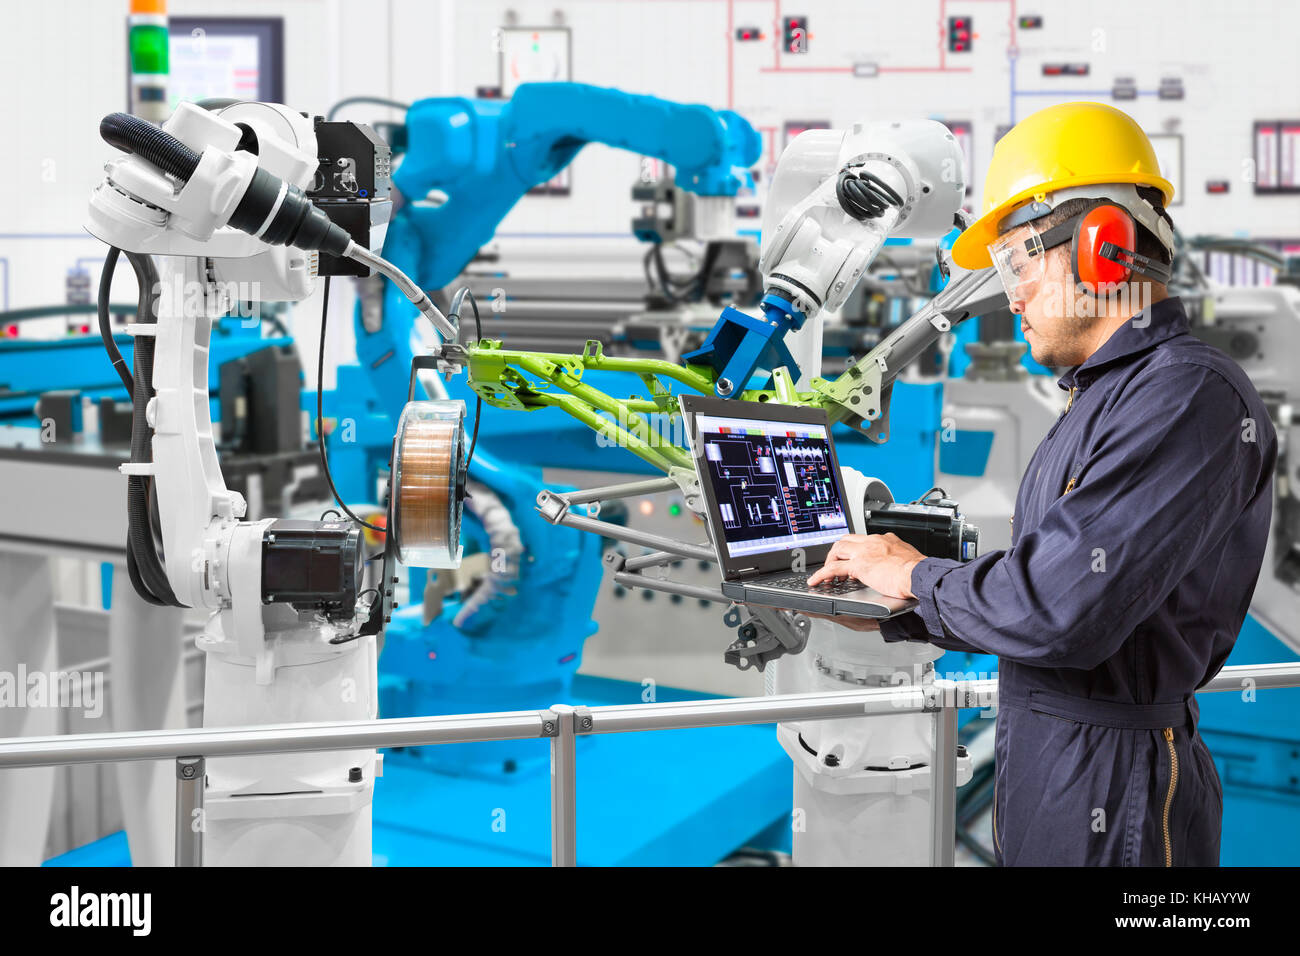 Engineer using laptop computer maintenance automatic robotic welding with robot workpiece in automotive industry, - Stock Image